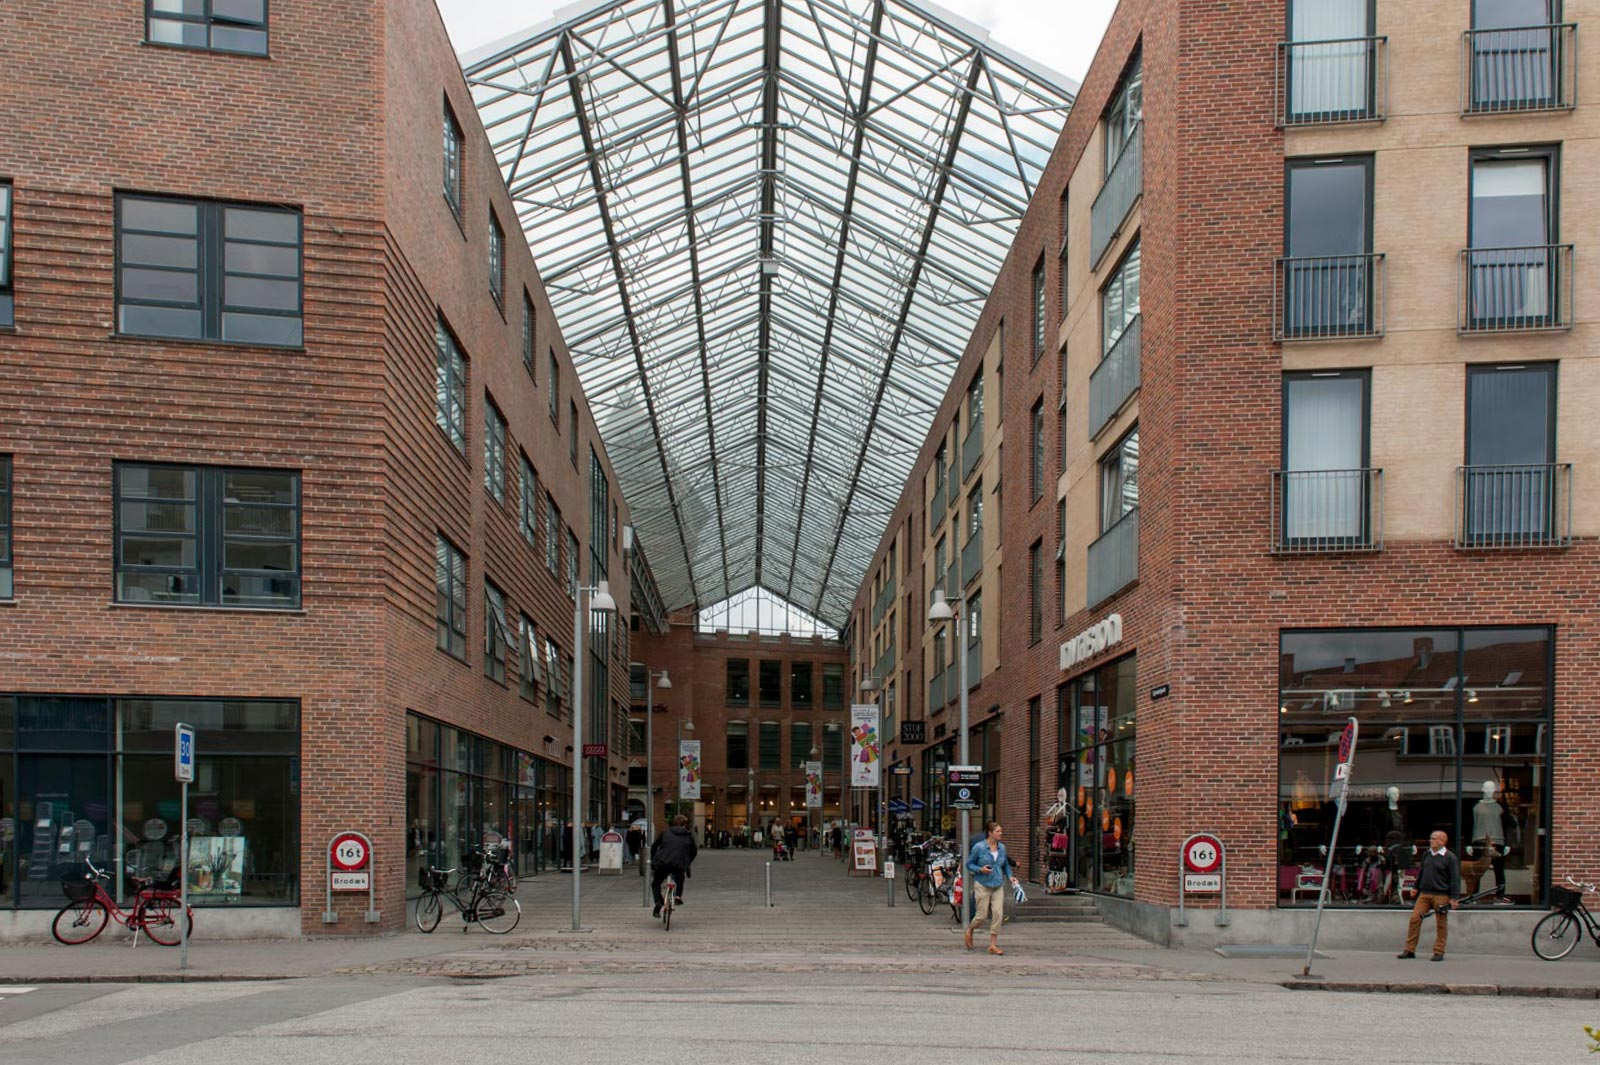 Spinderiet Valby - Lively neighbourhood and shopping streets on historic site in Valby